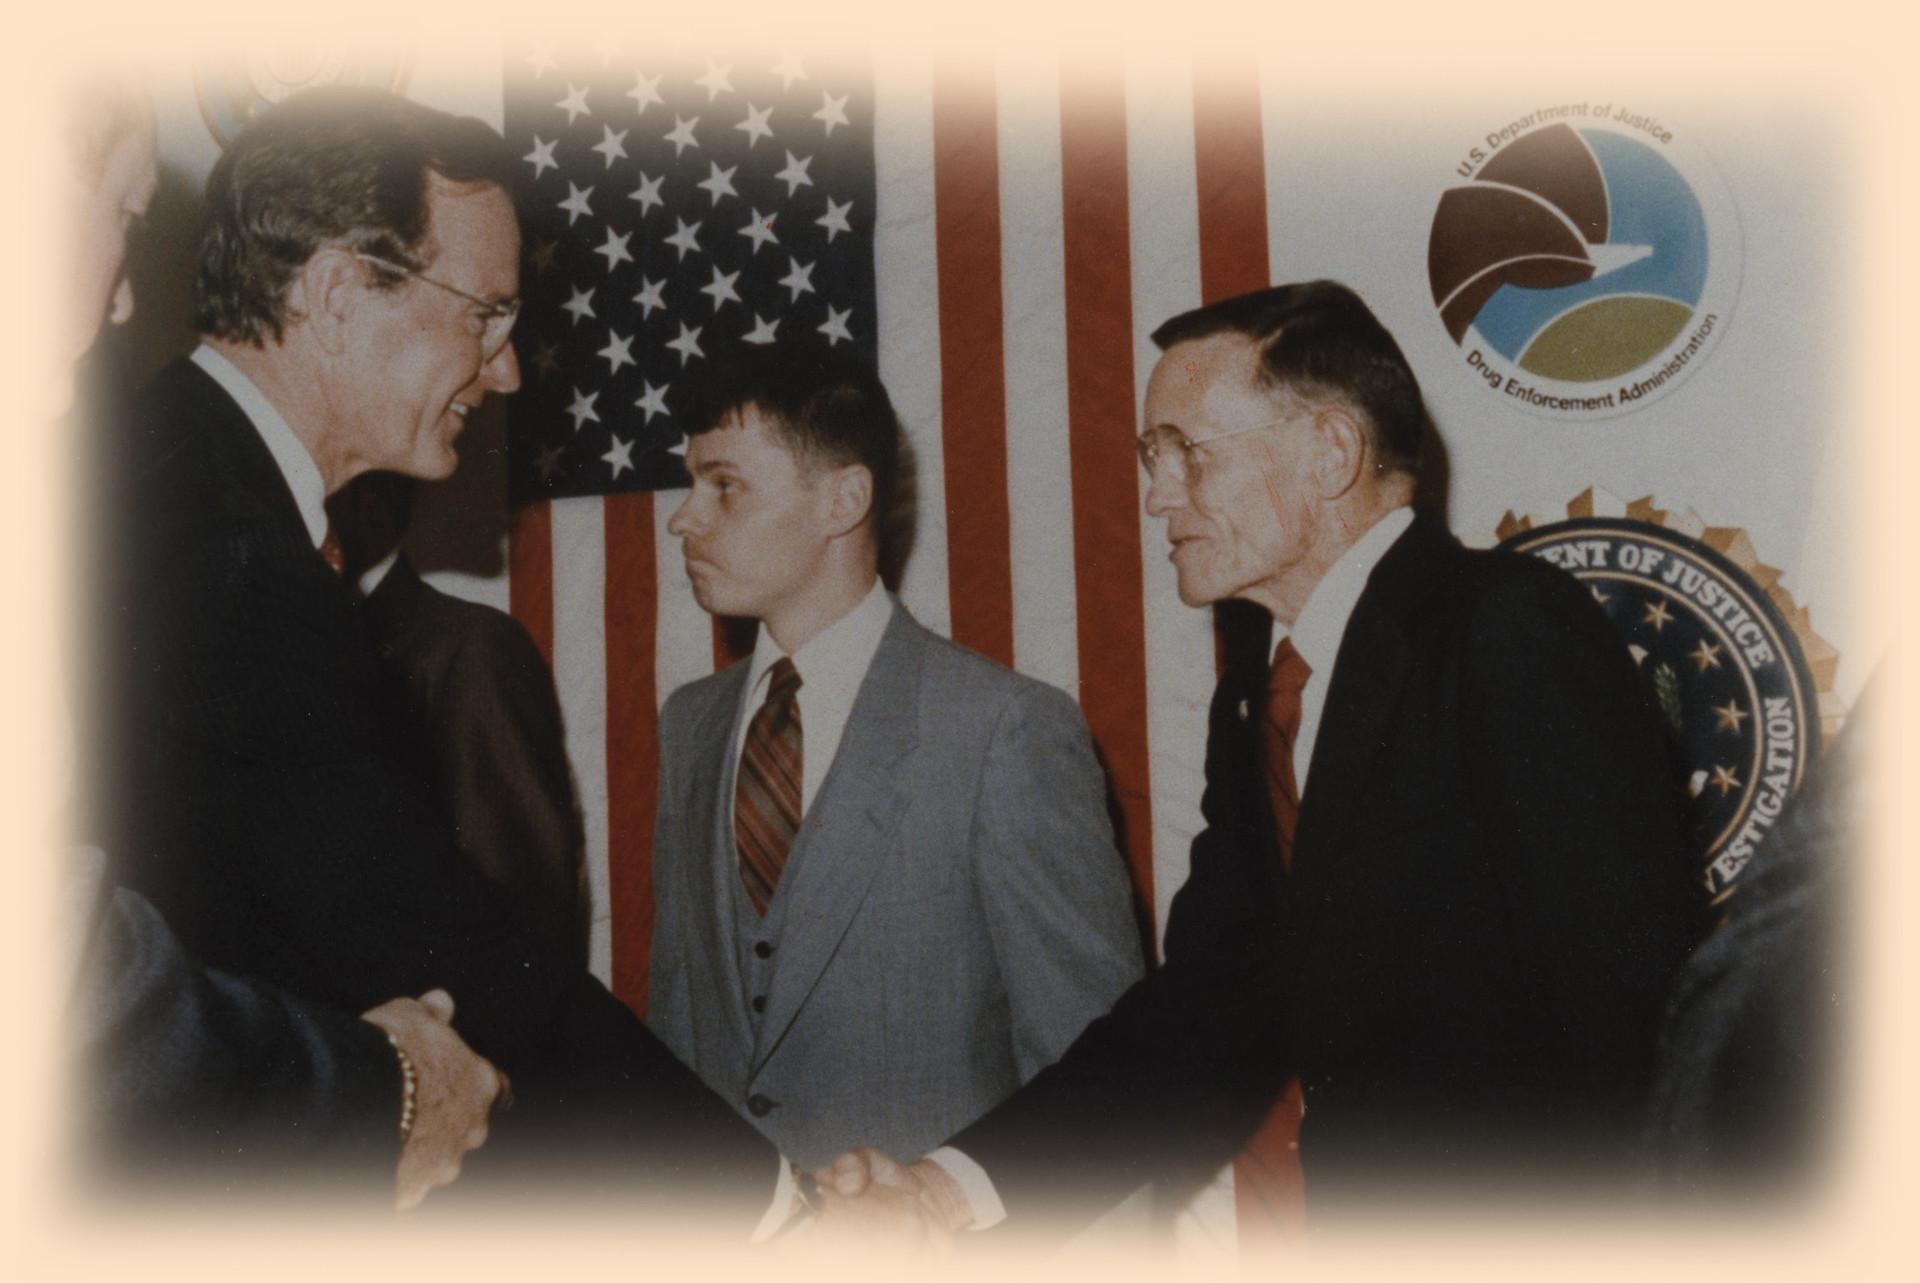 Fuss shakes hands with his boss, vice president George H.W. Bush